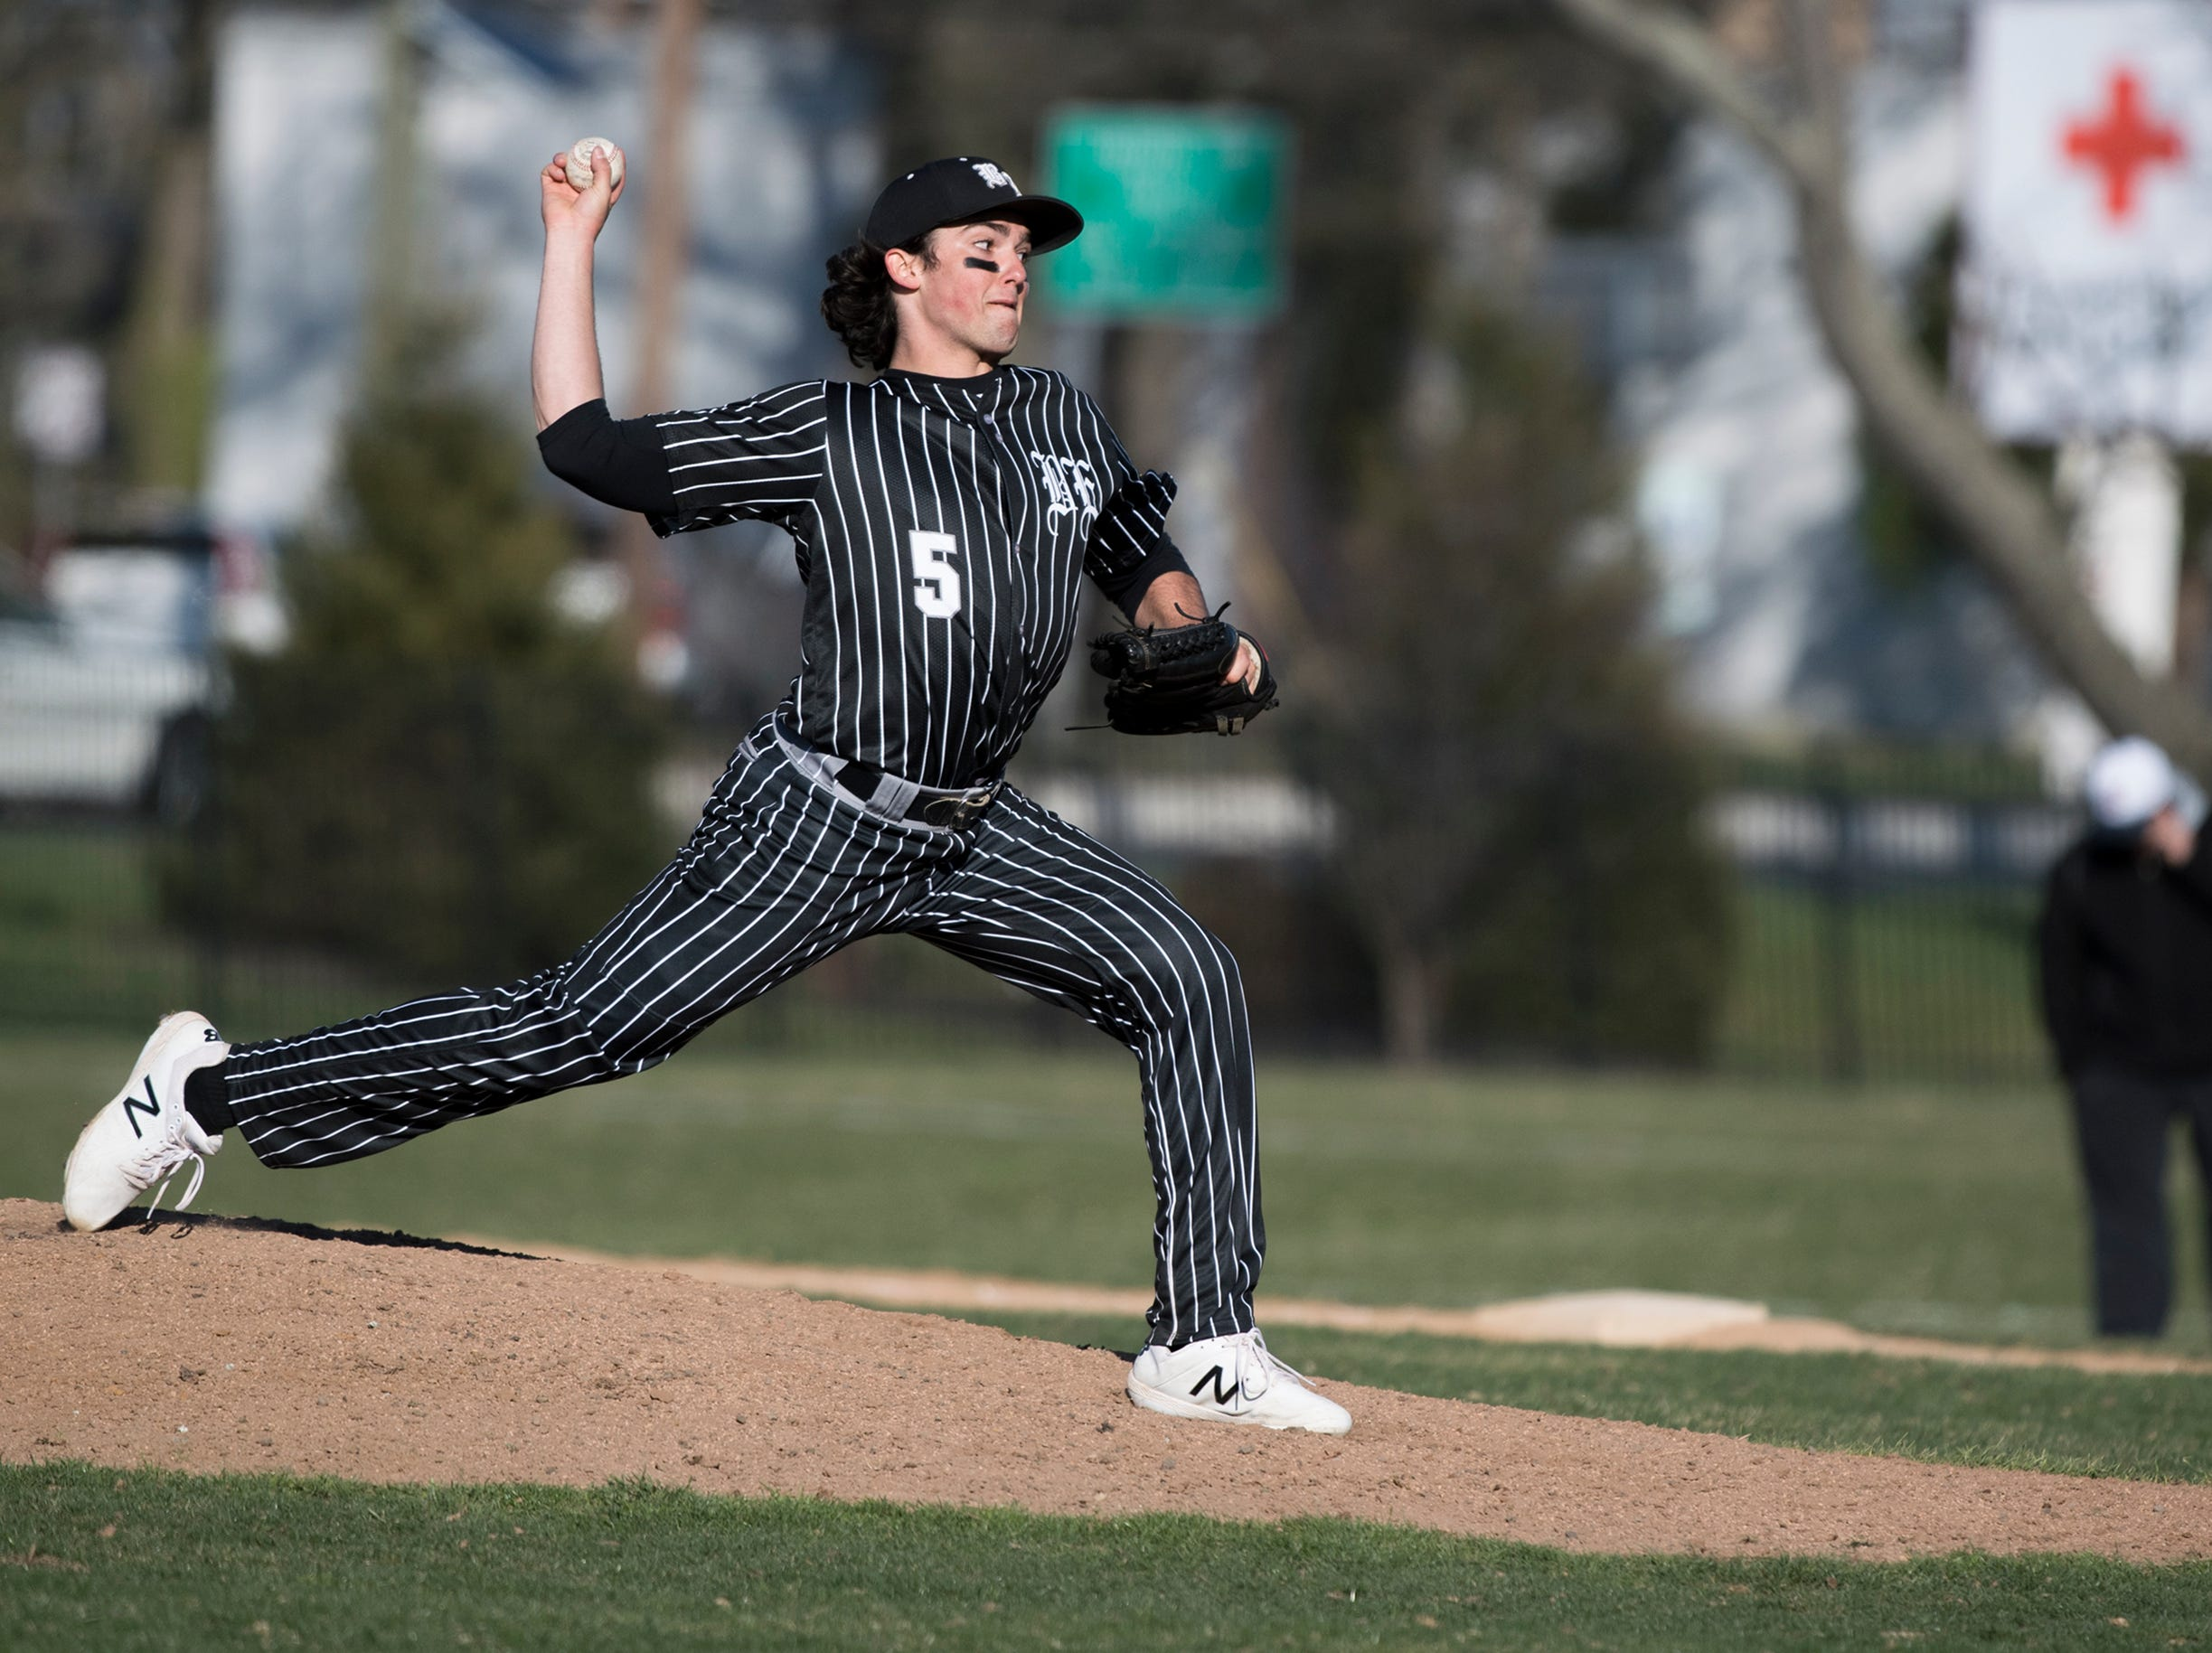 Bishop Eustace's Matt Orlando (5) pitches against Eastern Monday, April 1, 2019 in Pennsauken. Eustace won 12-0.